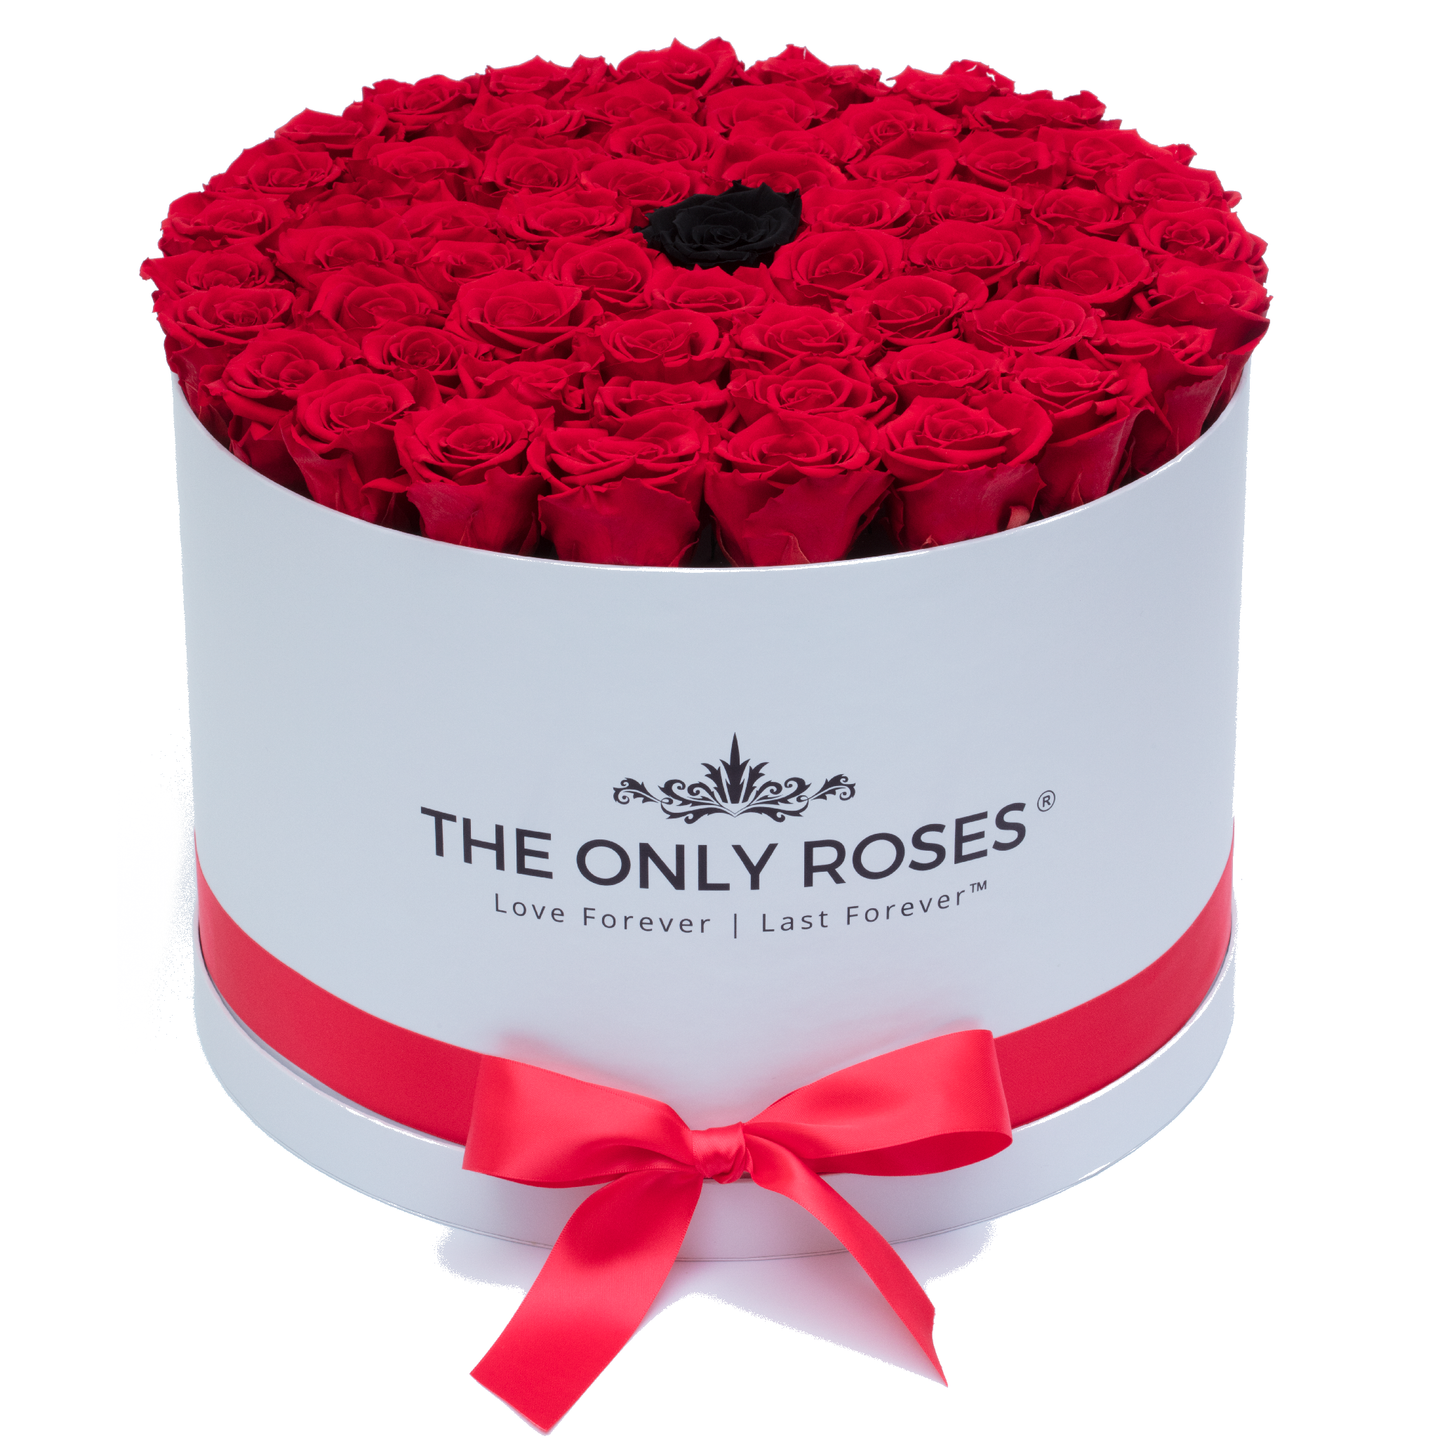 Red & Black Preserved Roses | Large Round White Huggy Rose Box - The Only Roses